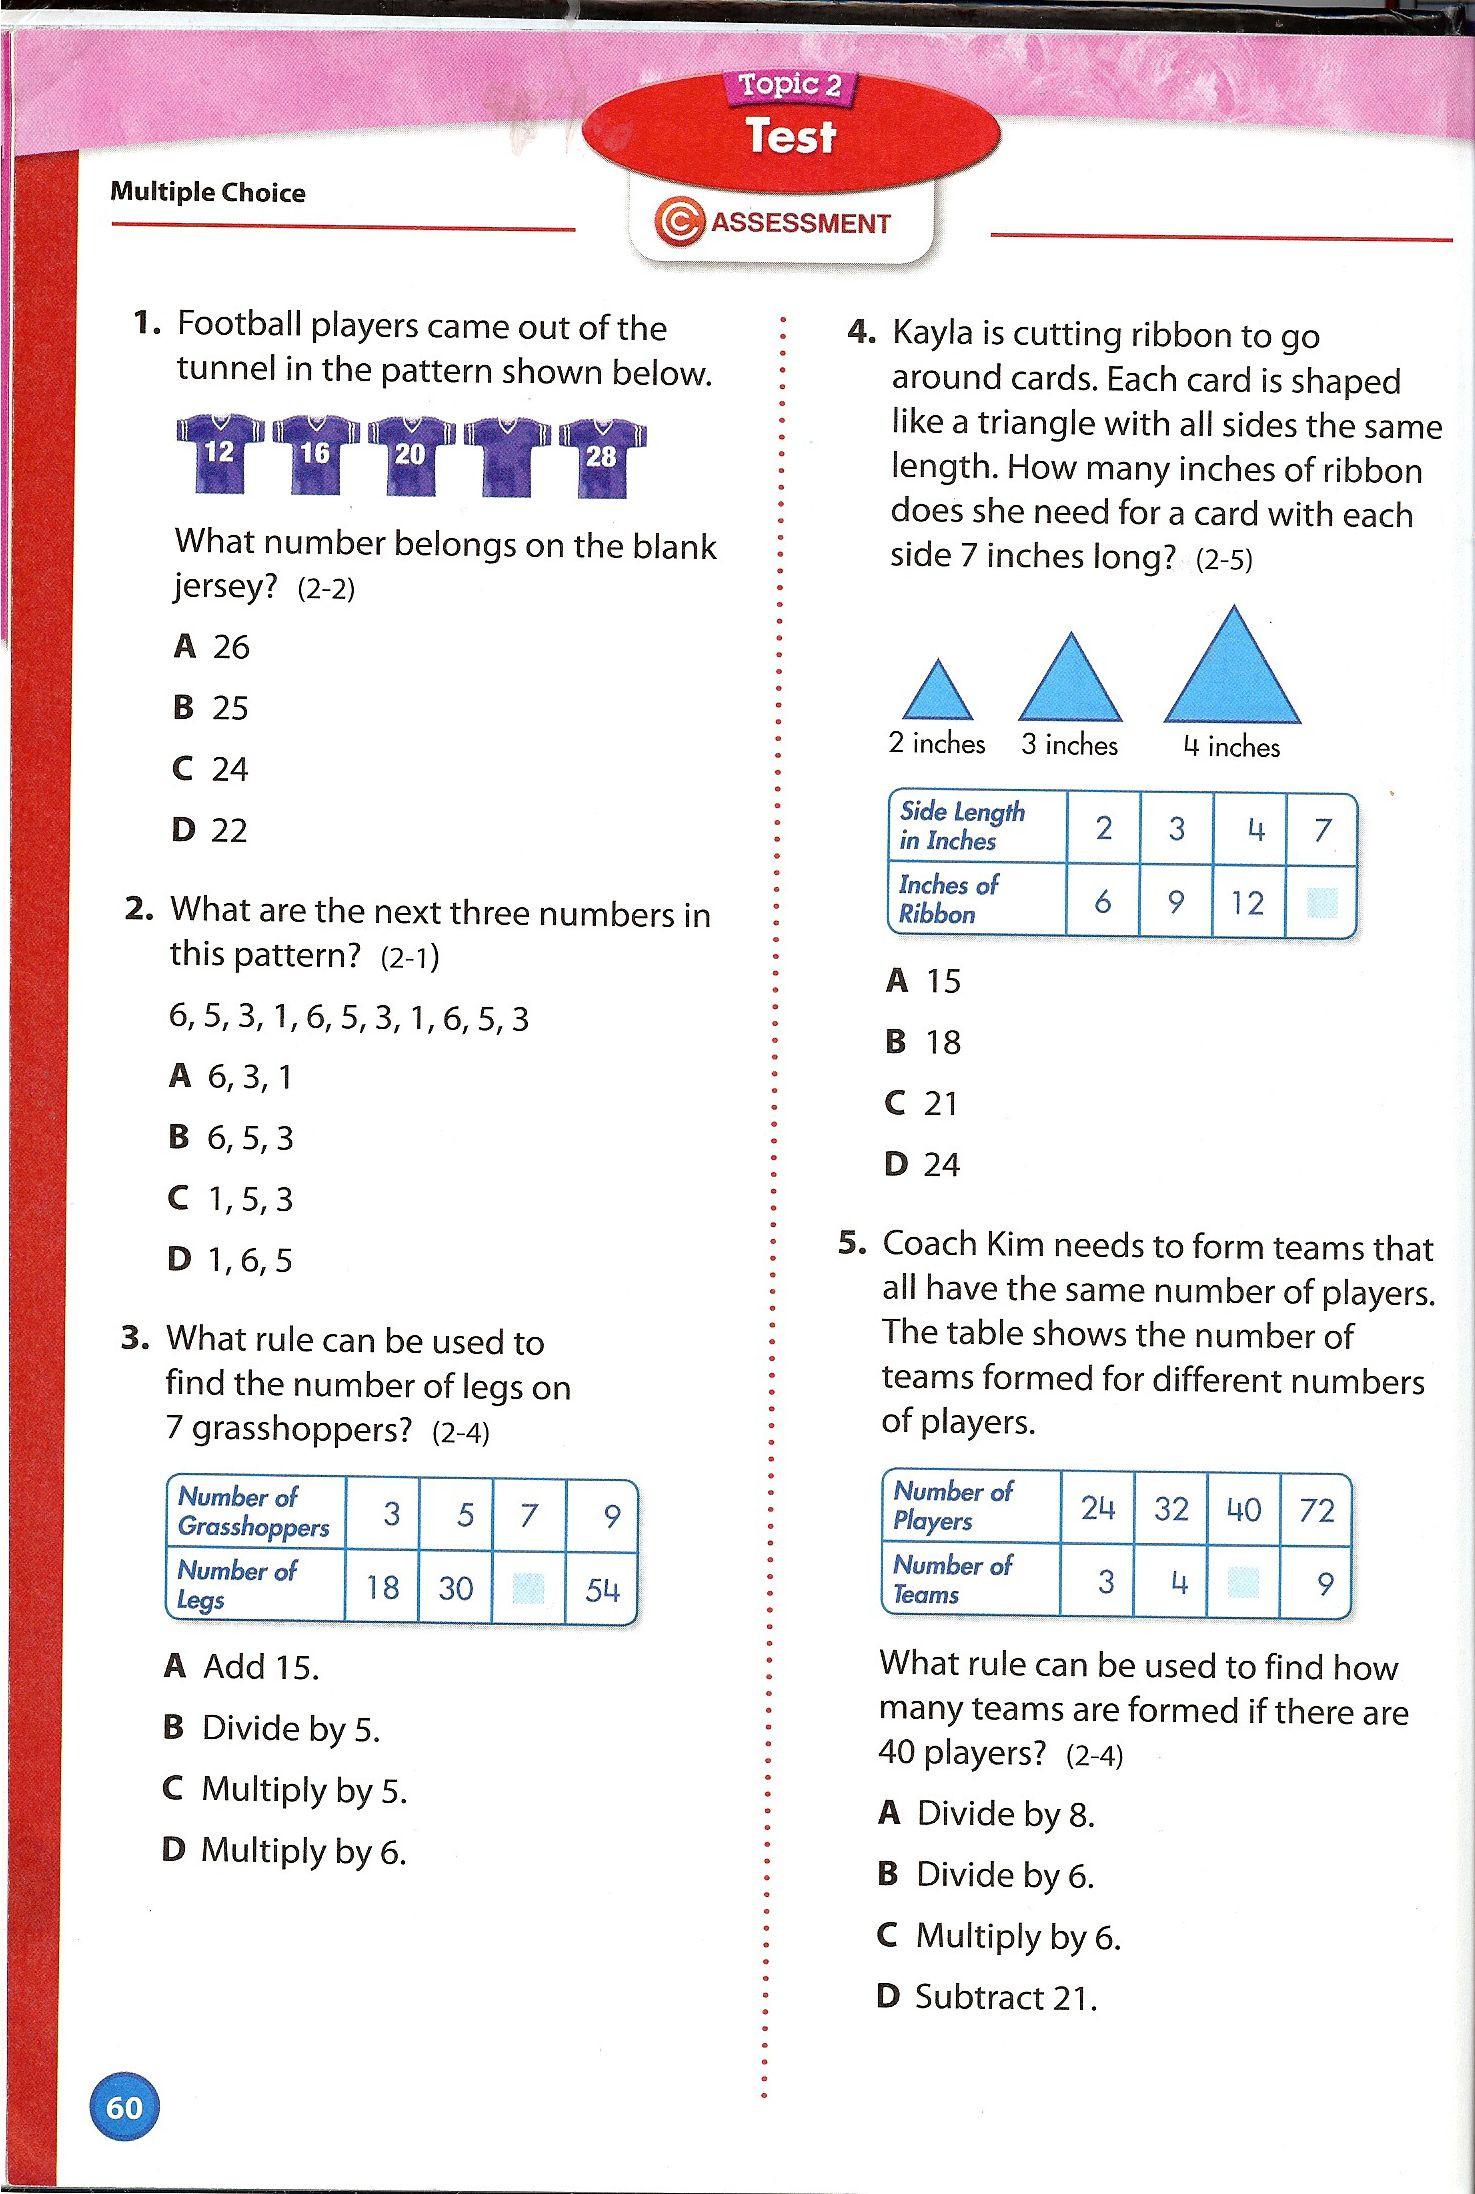 Envision Math 4th Grade Worksheets Envision Math Grade 4 topic 2 Test Page 1